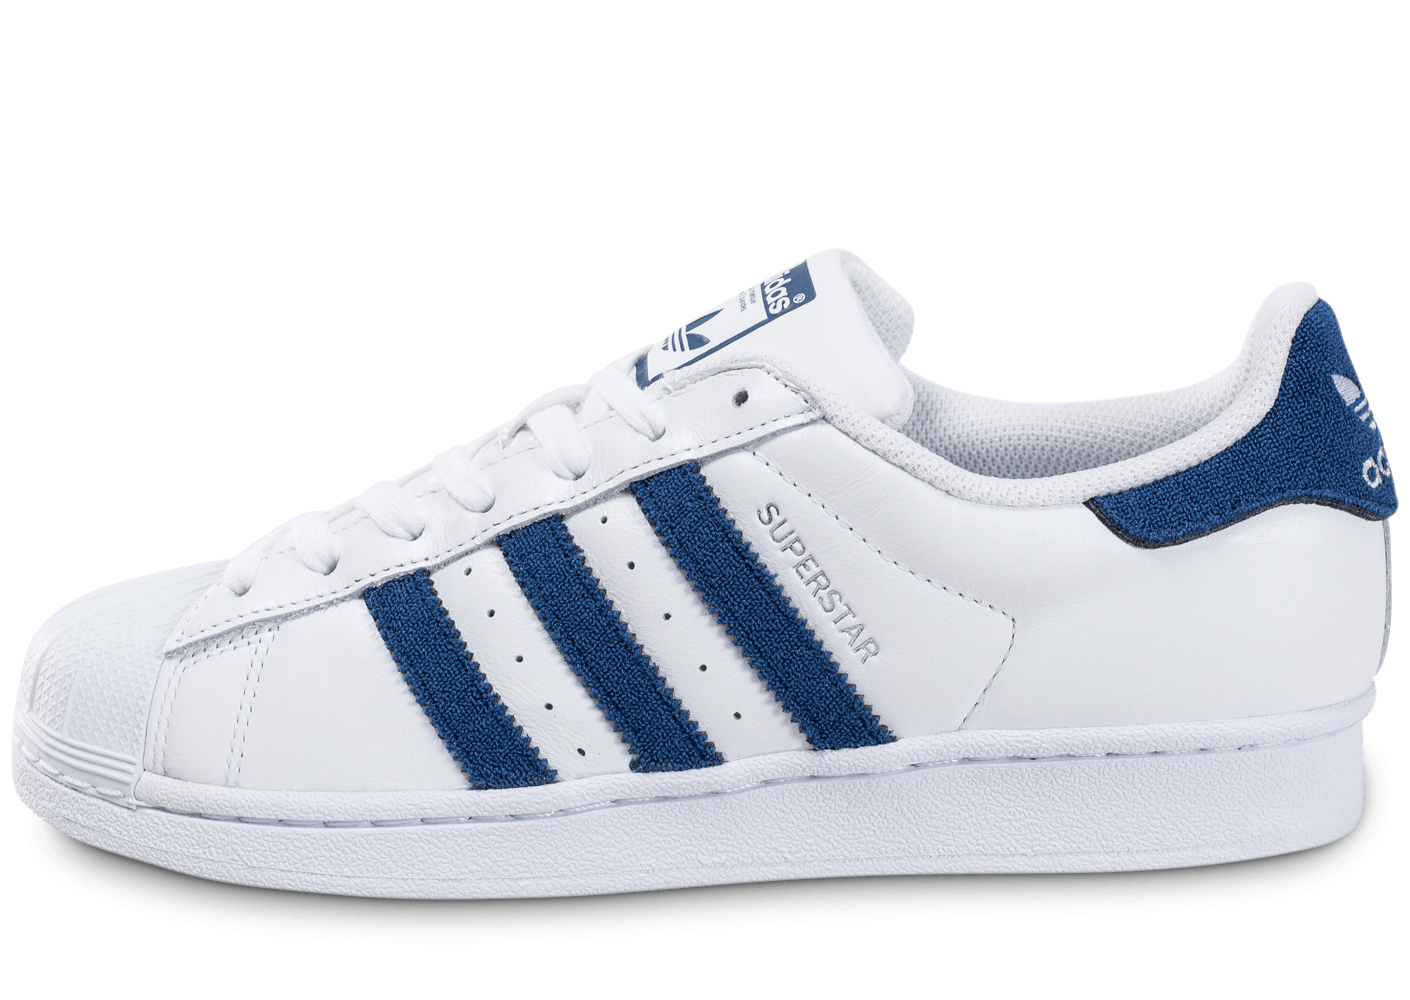 adidas superstar blanche et bleu fonc chaussures homme chausport. Black Bedroom Furniture Sets. Home Design Ideas